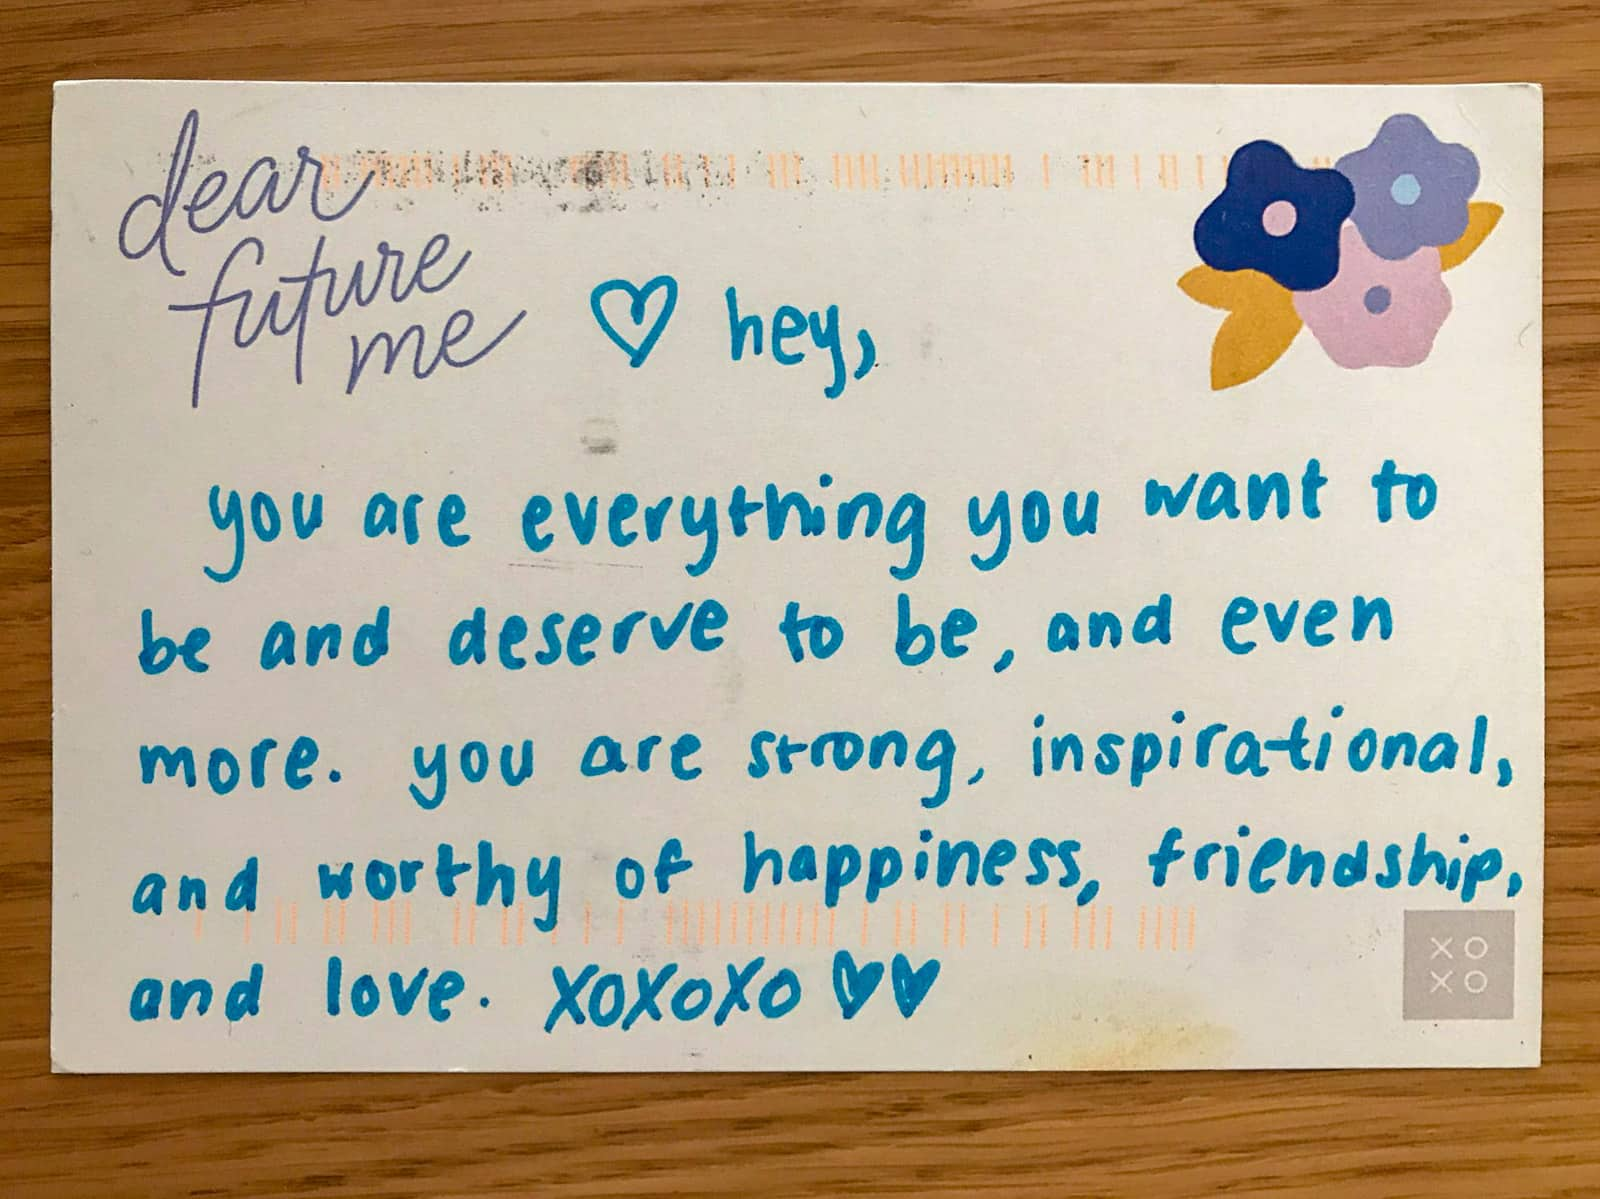 "A postcard with ""dear future me"" printed on it and a handwritten message in blue ink: hey, you are everything you want to be and deserve to be, and even more. you are strong, inspirational, and worthy of happiness, friendship and love. xoxoxo"